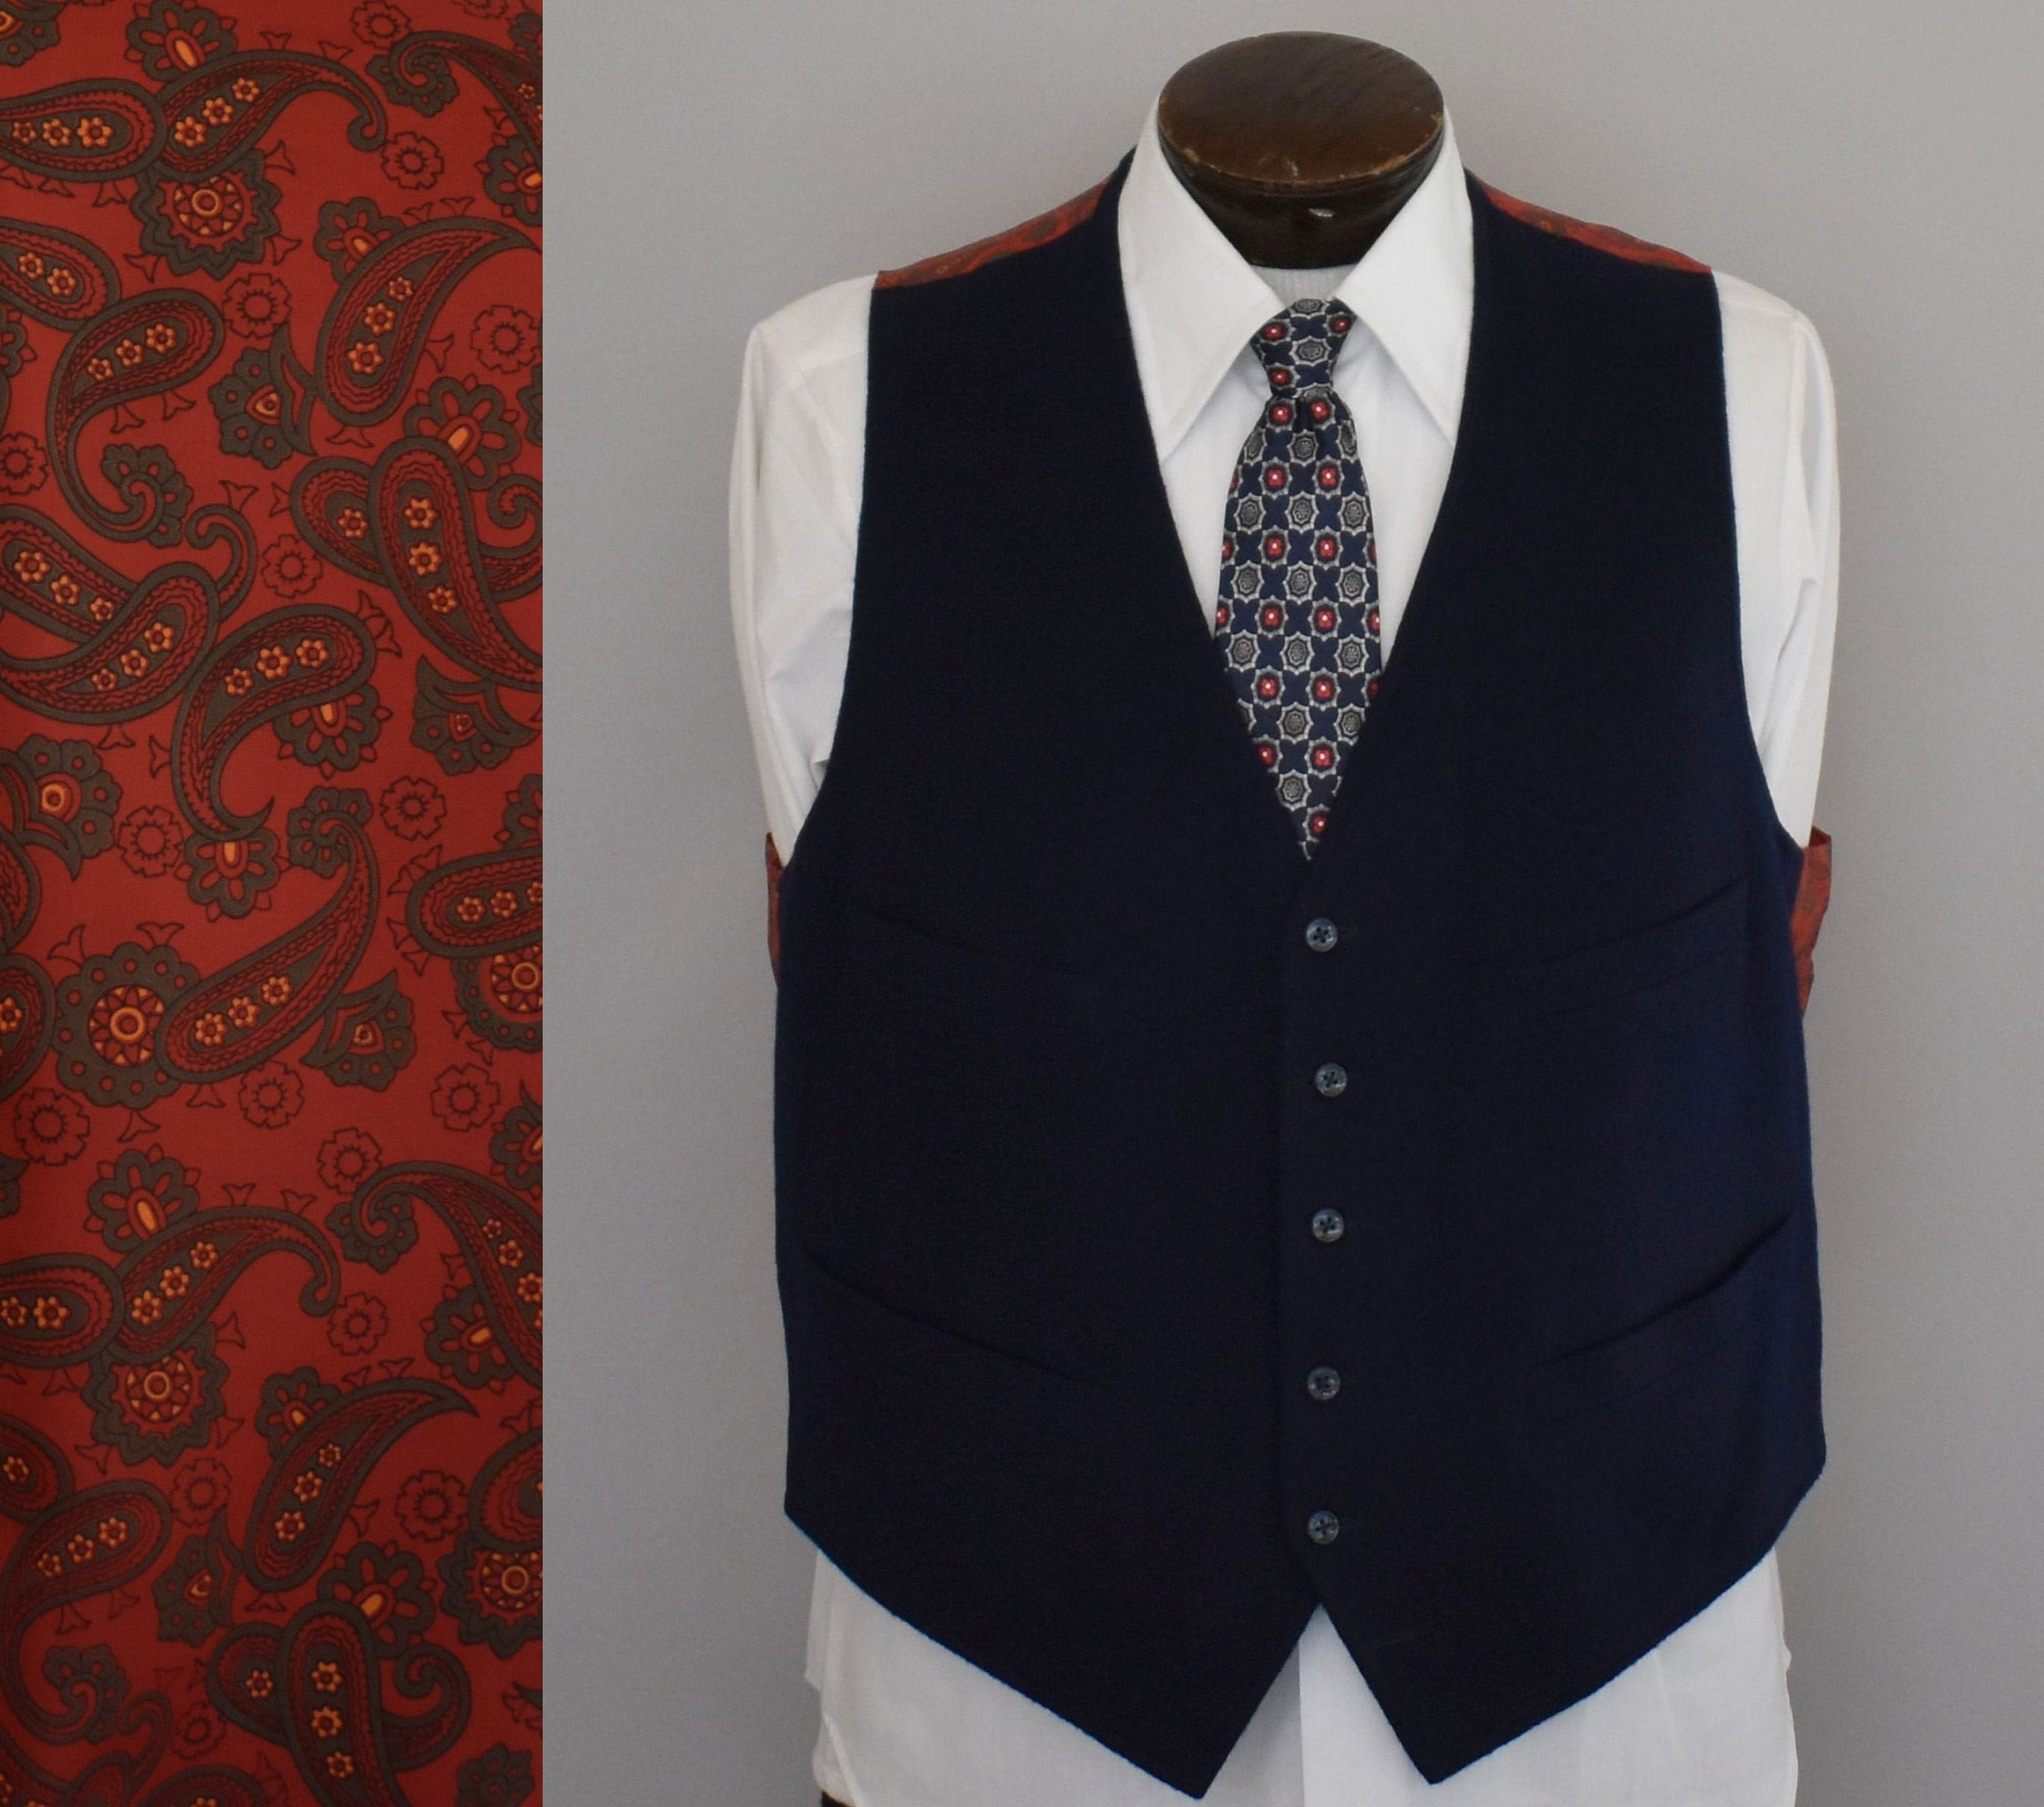 1960s – 70s Men's Ties | Skinny Ties, Slim Ties Navy Blue  Paisley Vest, 20S Style Mens Waistcoat, 1960S Hand Stitched Button Front Size Xl Extra Large $89.99 AT vintagedancer.com